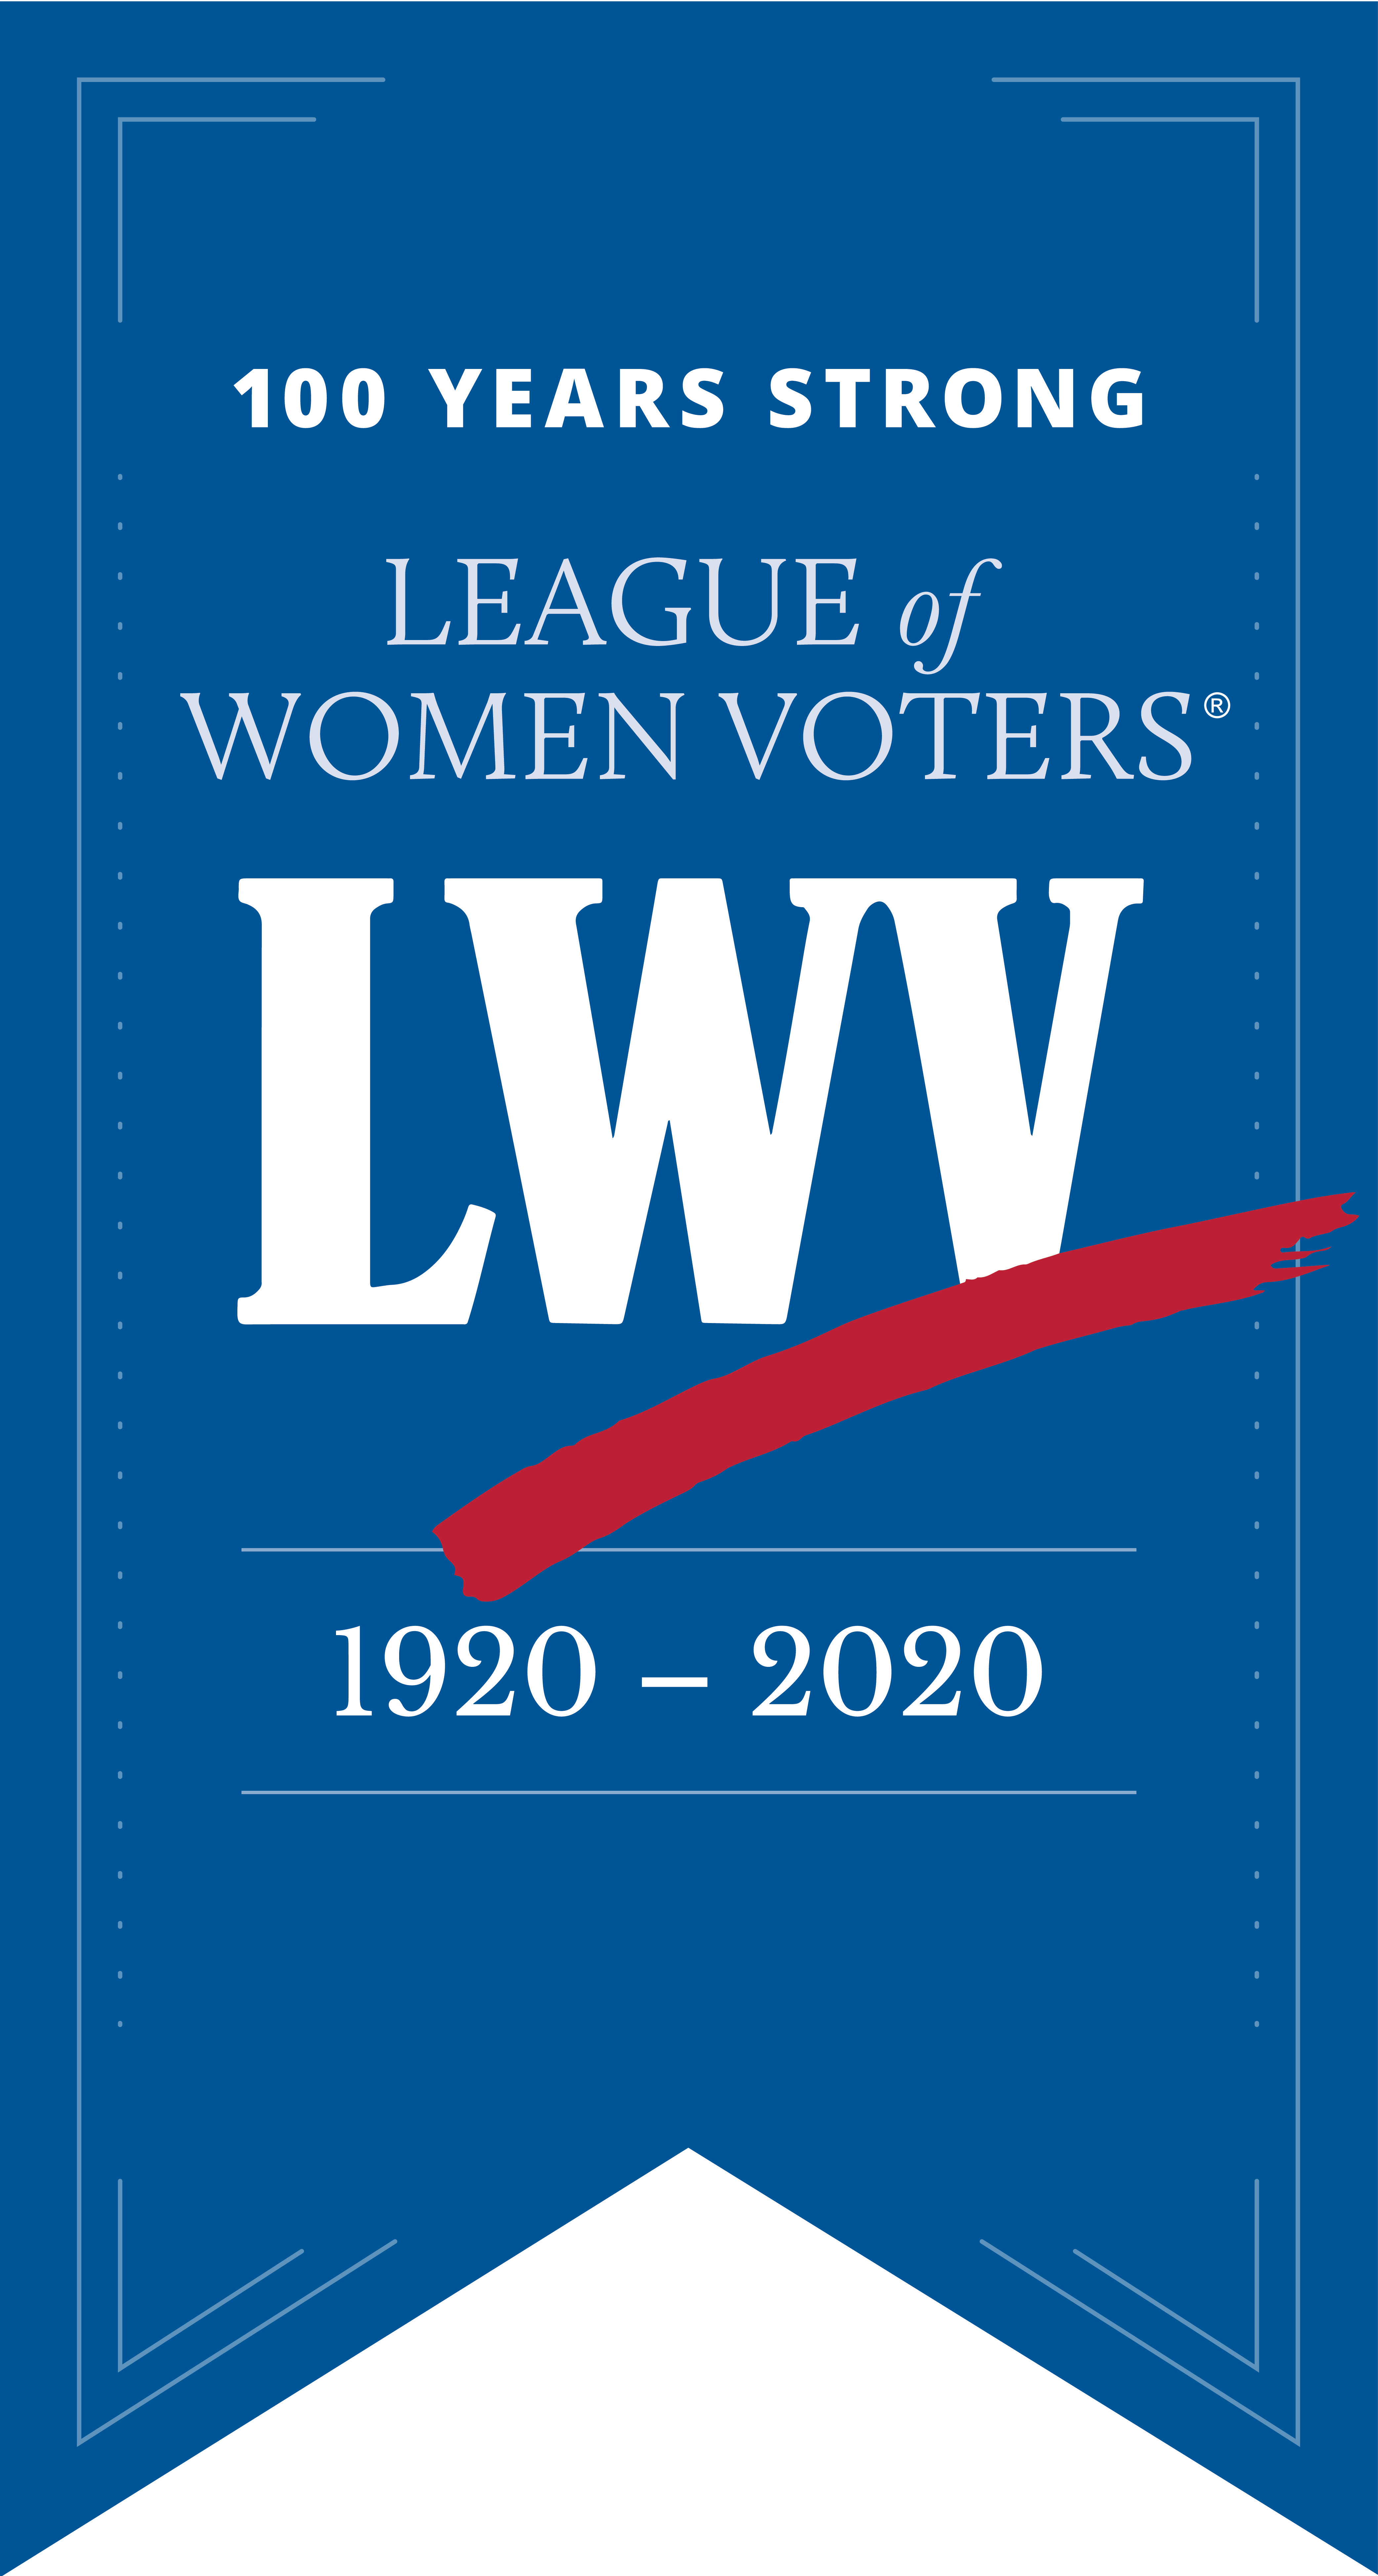 Logo of the League of Women Voters for 100th Anniversary